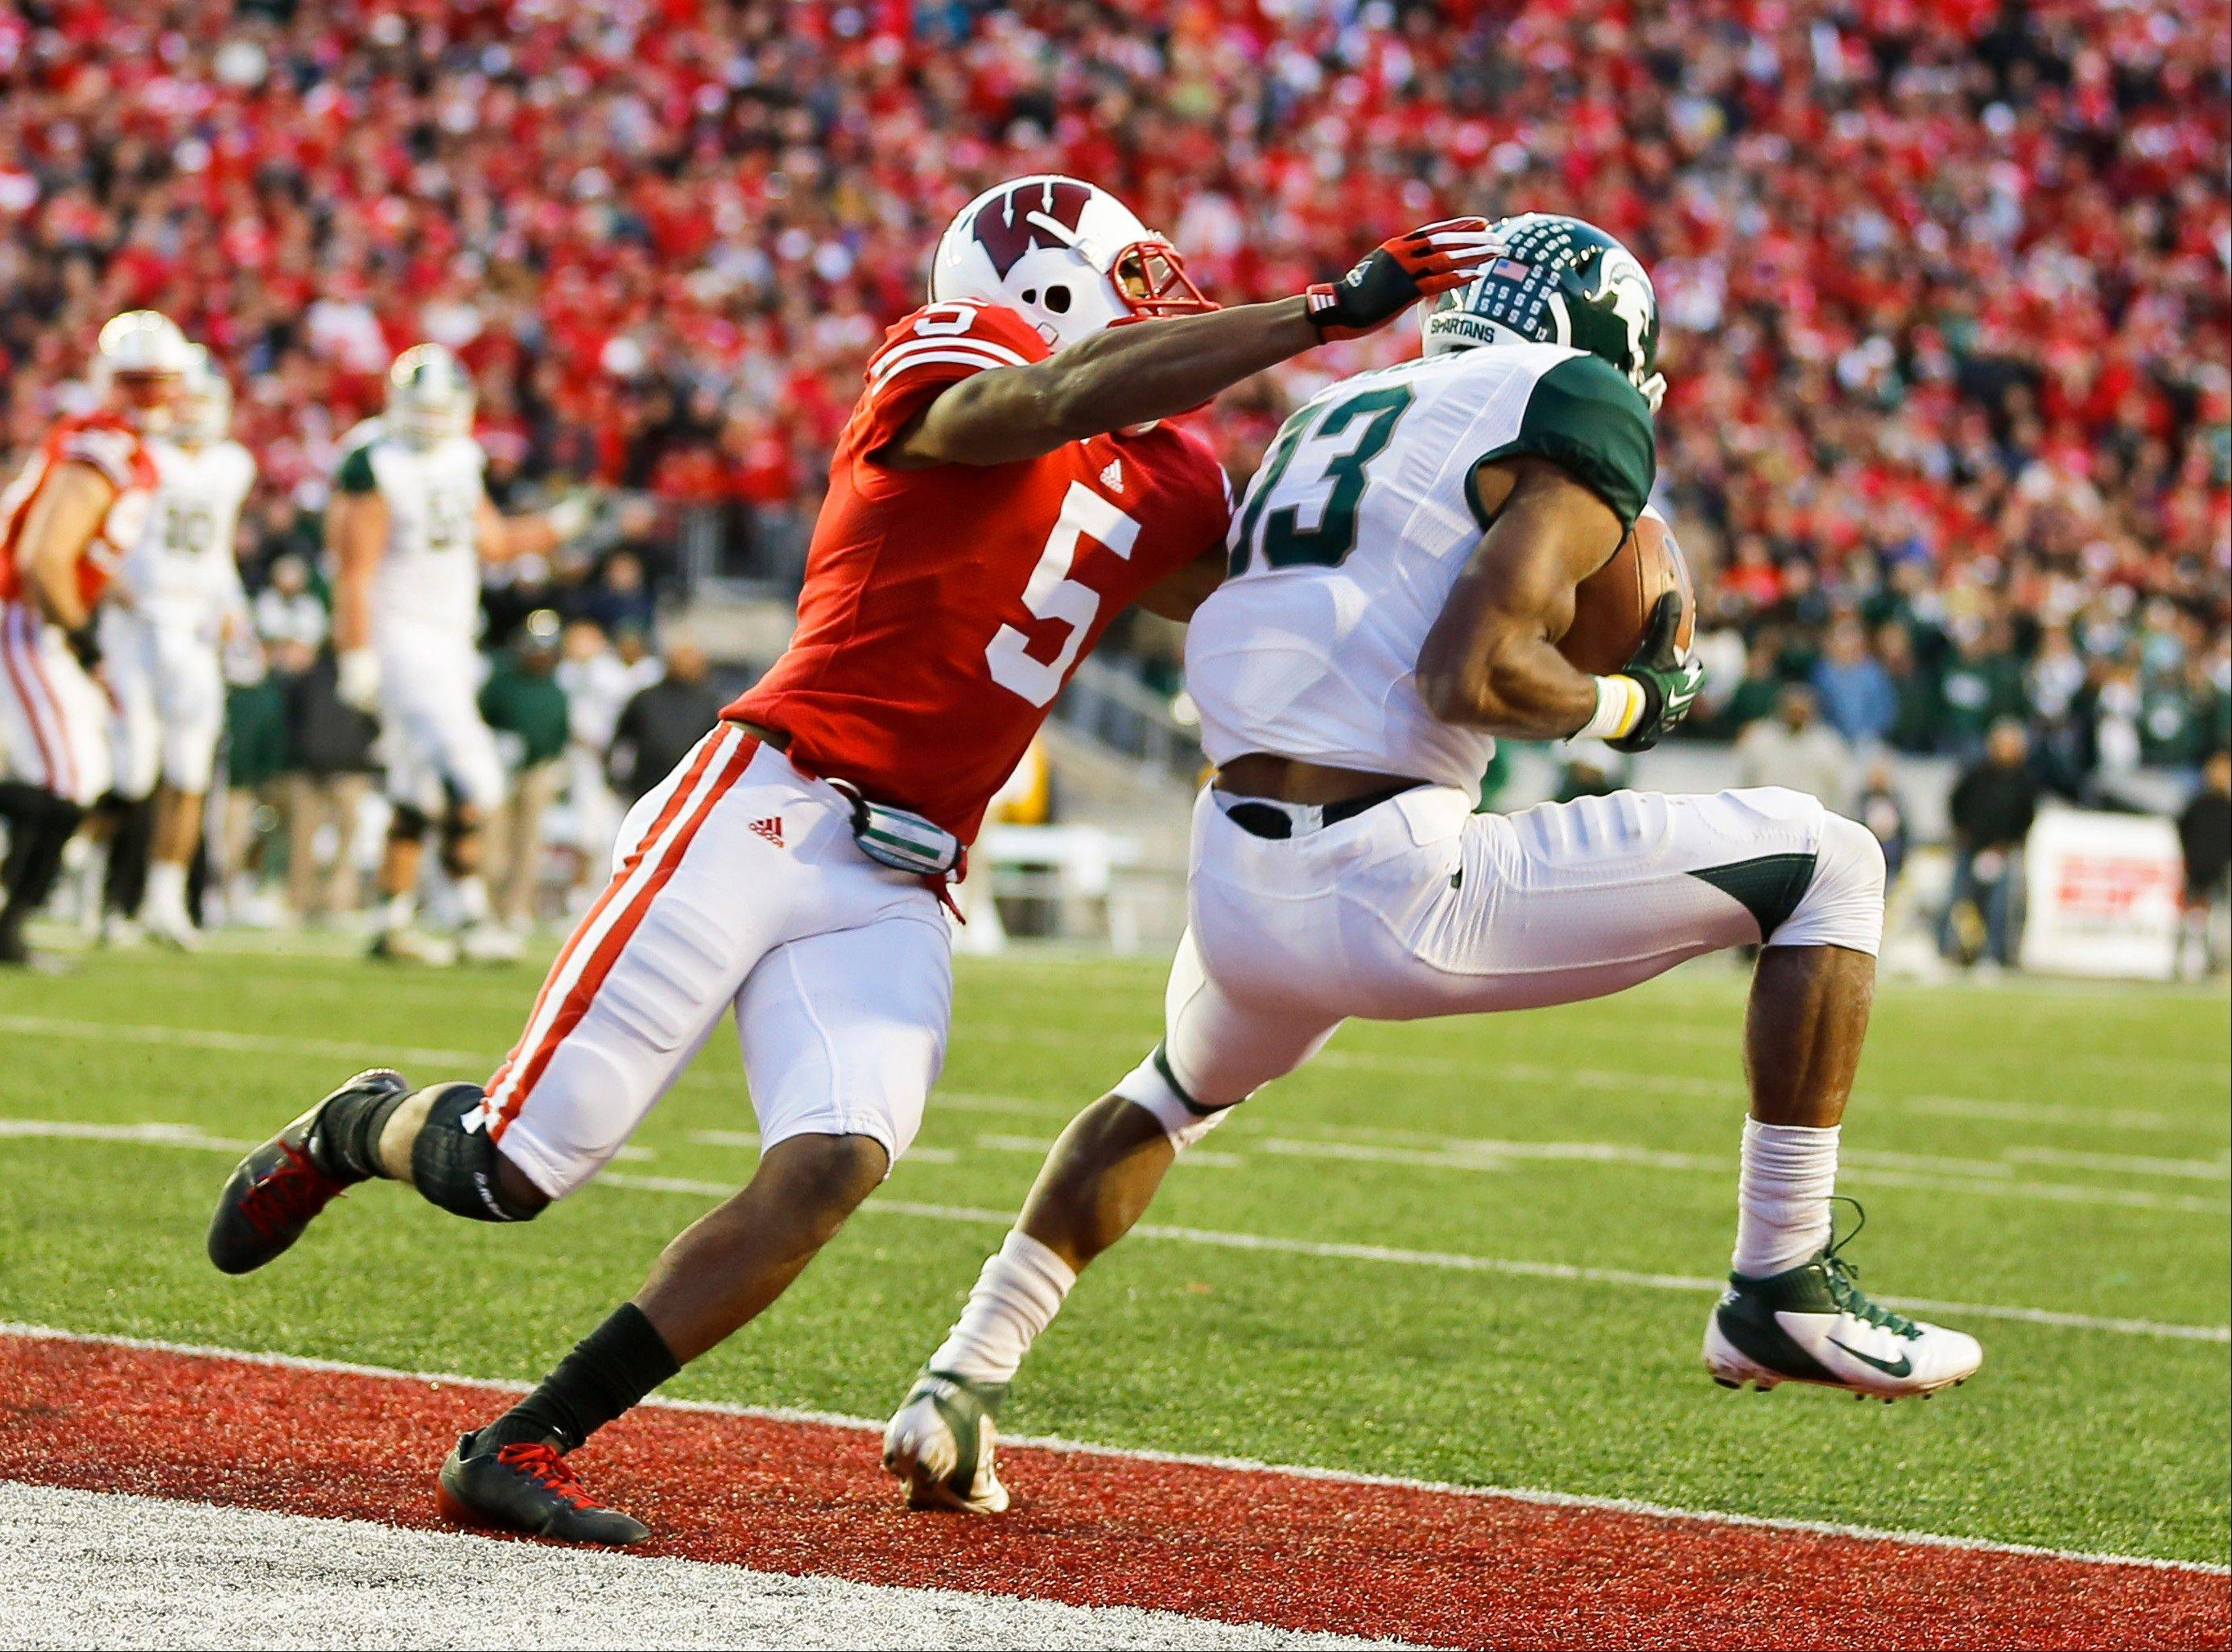 Michigan State wide receiver Bennie Fowler (13) makes the game-winning touchdown catch against Wisconsin defensive back Darius Hillary (5) in overtime in an NCAA college football game Saturday, Oct. 27, 2012, in Madison, Wis. Michigan State won 16-13.